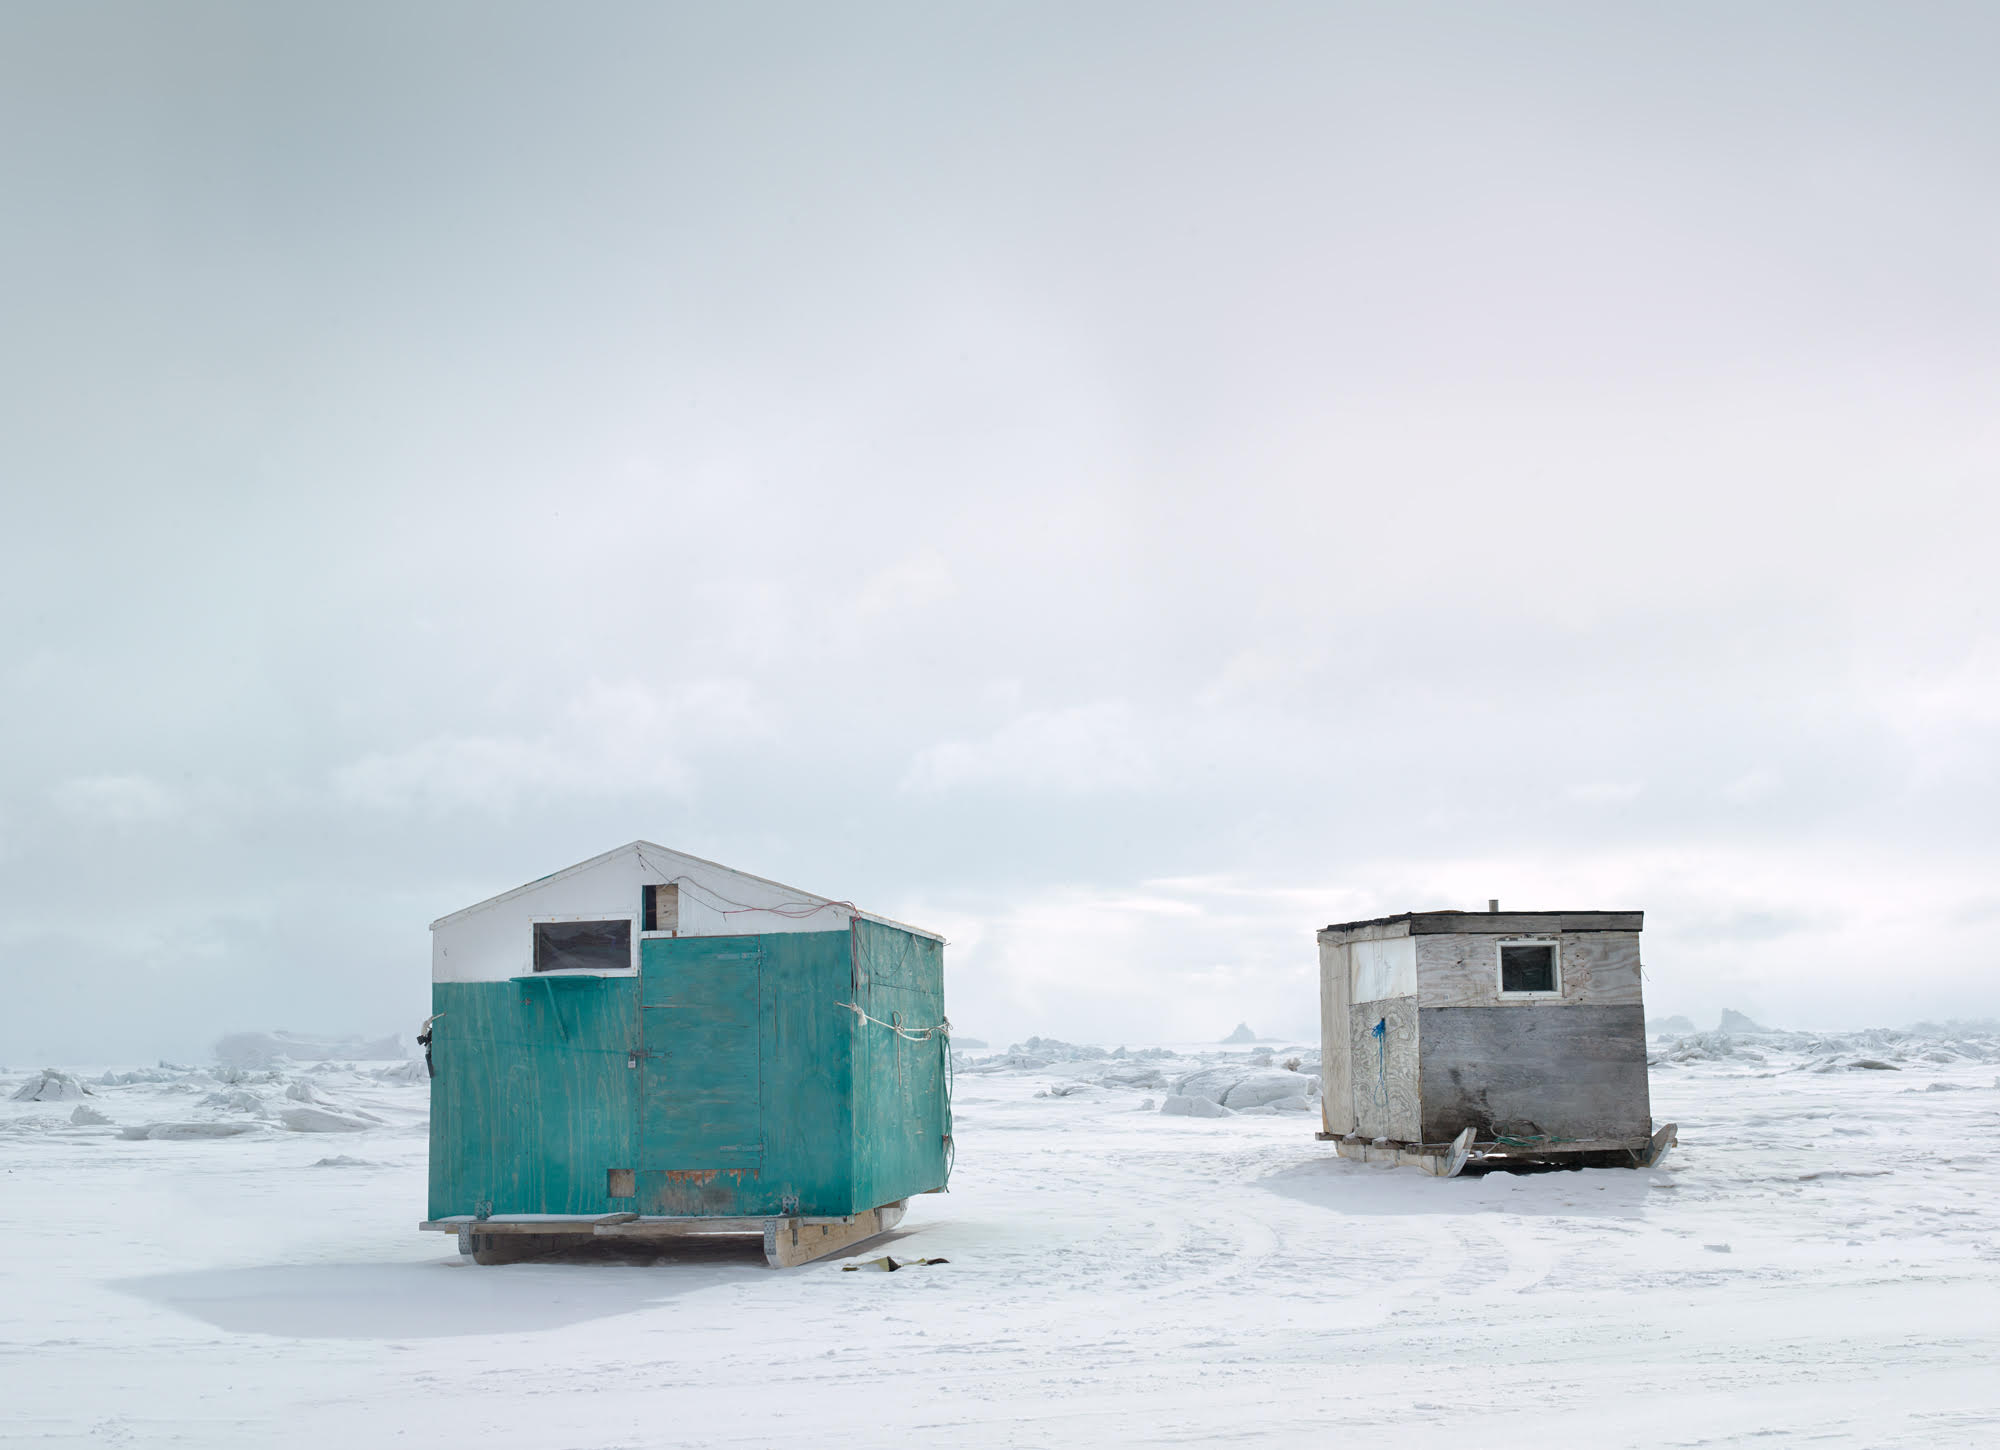 """""""Sila Fishing Houses"""", © Corina Gamma,  Fishing Huts on the Sea Ice #2 , Qaanaaq, Greenland 2018 [Fishing huts are used as temporary shelter during ice fishing. They are transported by sled after the sea ice has firmly formed, and brought to the sites for the fishing season.]"""